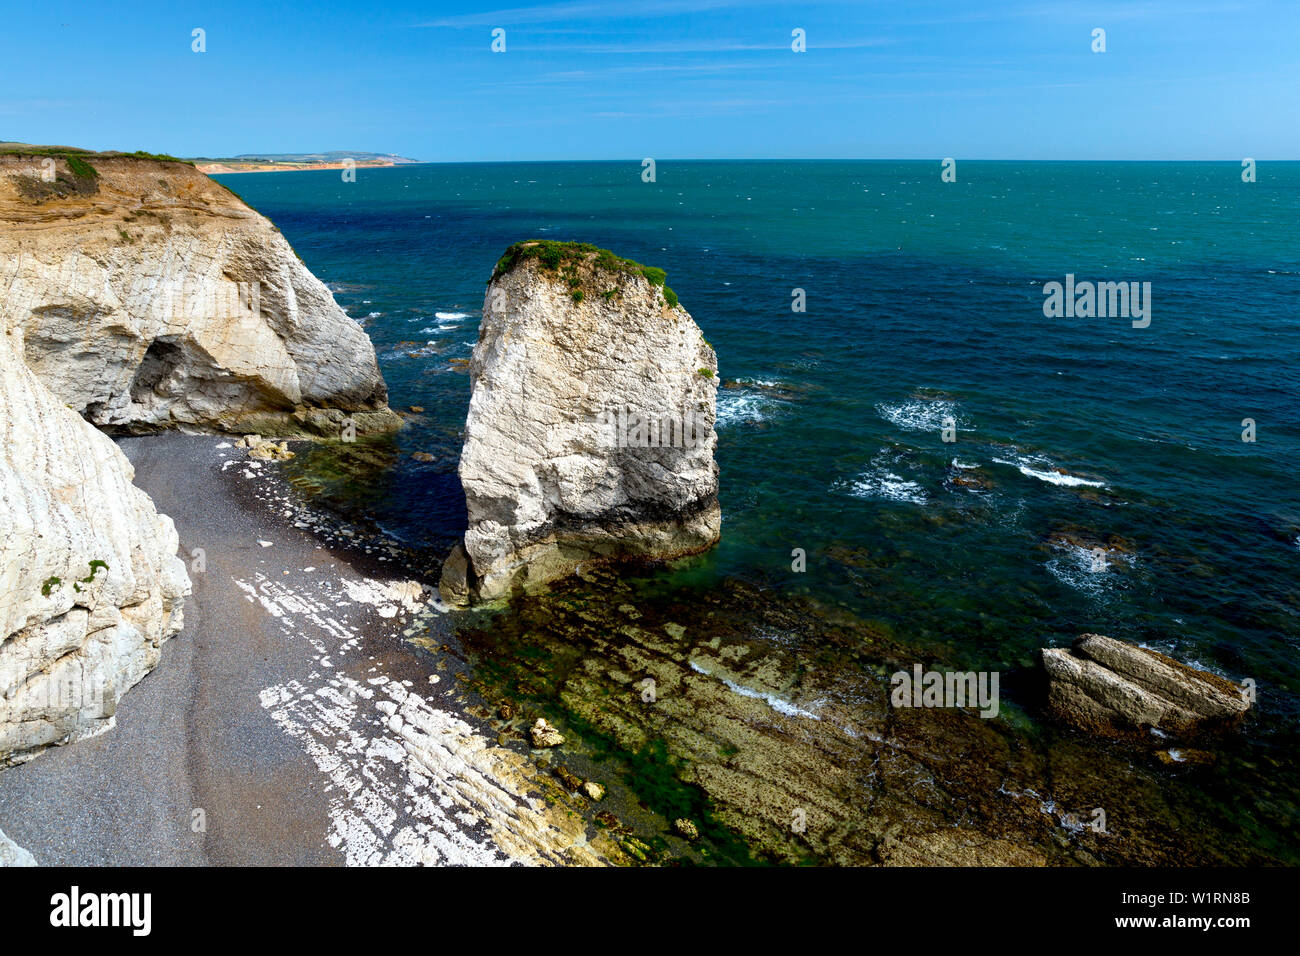 Piles,mer,vague,coupe,plage,craie,la plate-forme d'eau douce,Bay, île de Wight, Angleterre,UK, Photo Stock